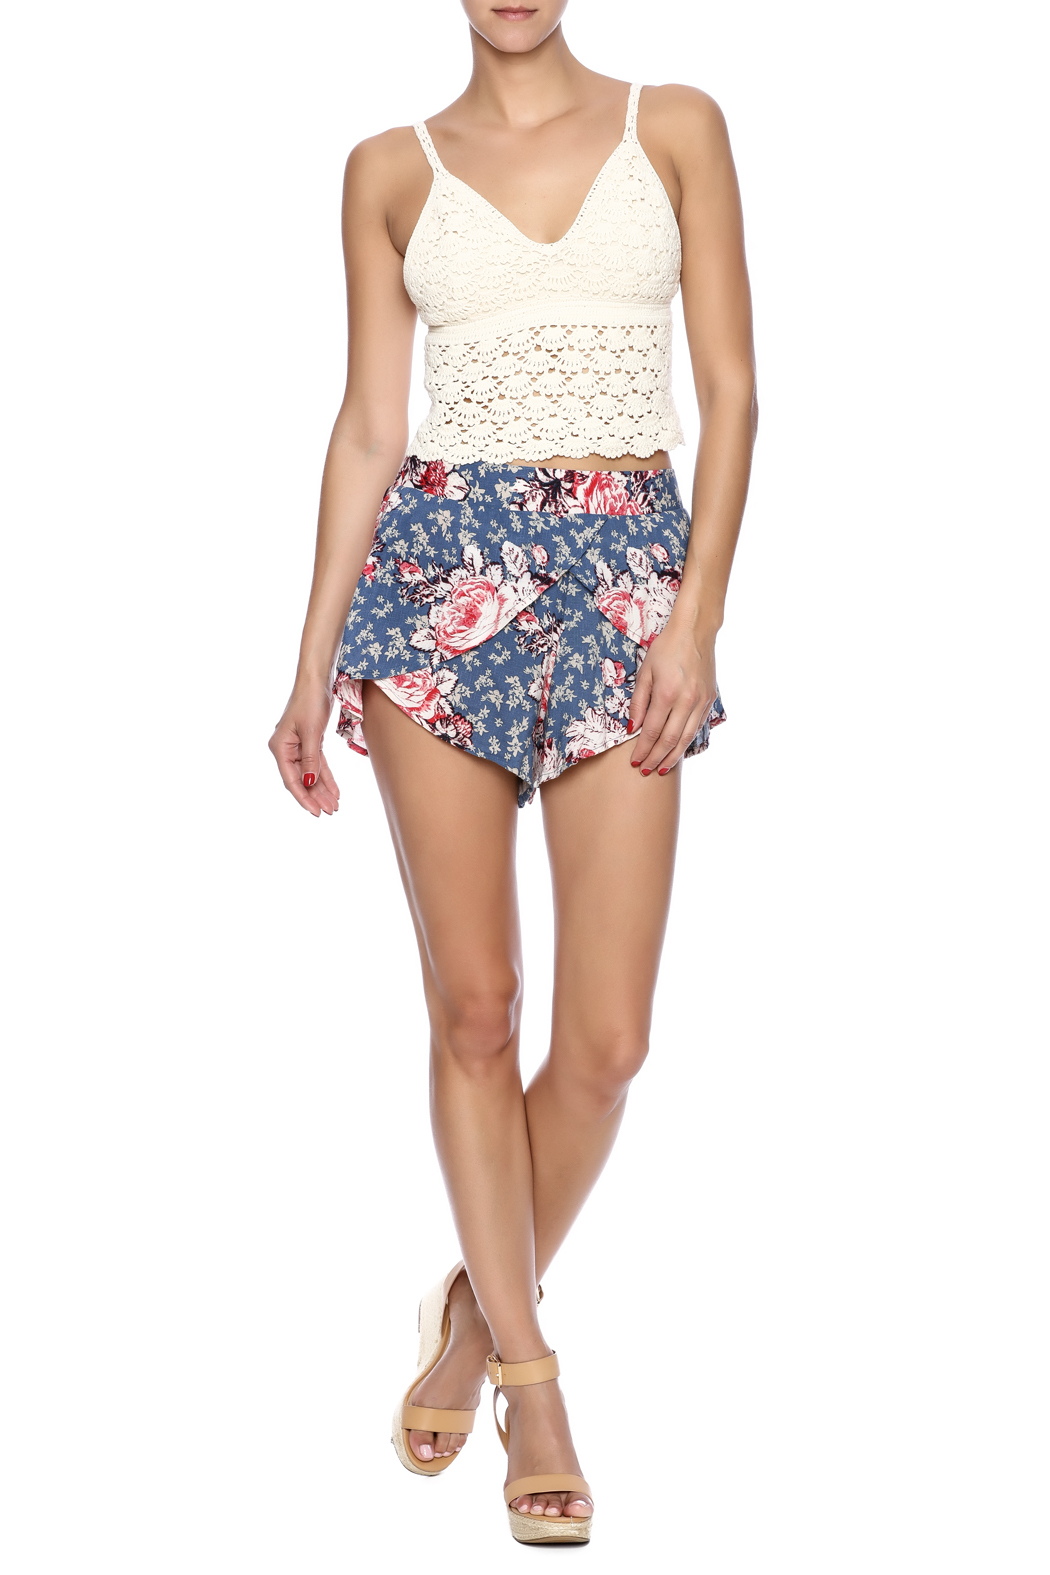 Free People Antiqued Floral Shorts - Front Full Image